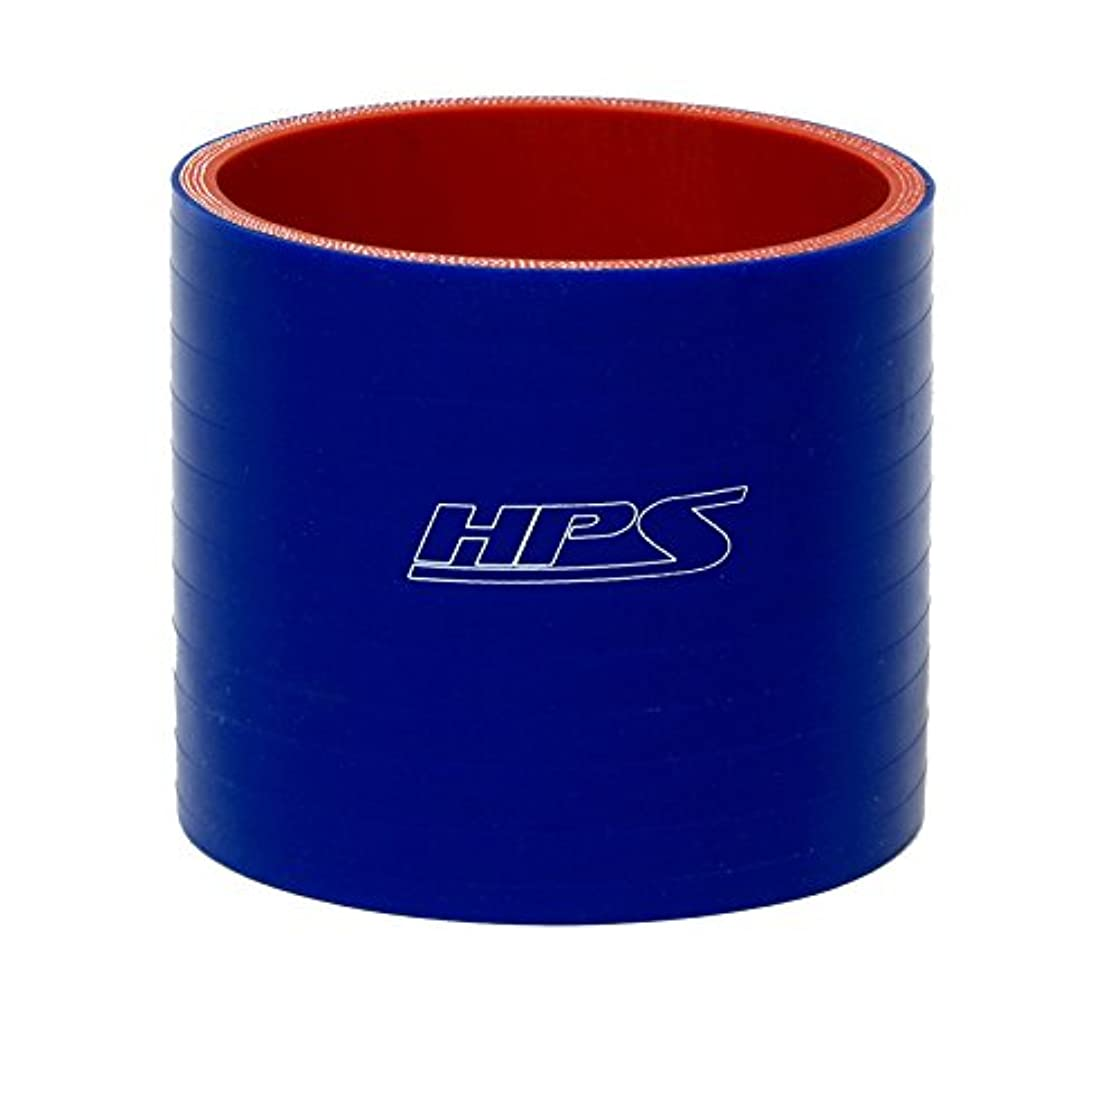 HPS HTSC-450-L6-BLUE Silicone High Temperature 4-ply Reinforced Straight Coupler Hose, 25 PSI Maximum Pressure, 6